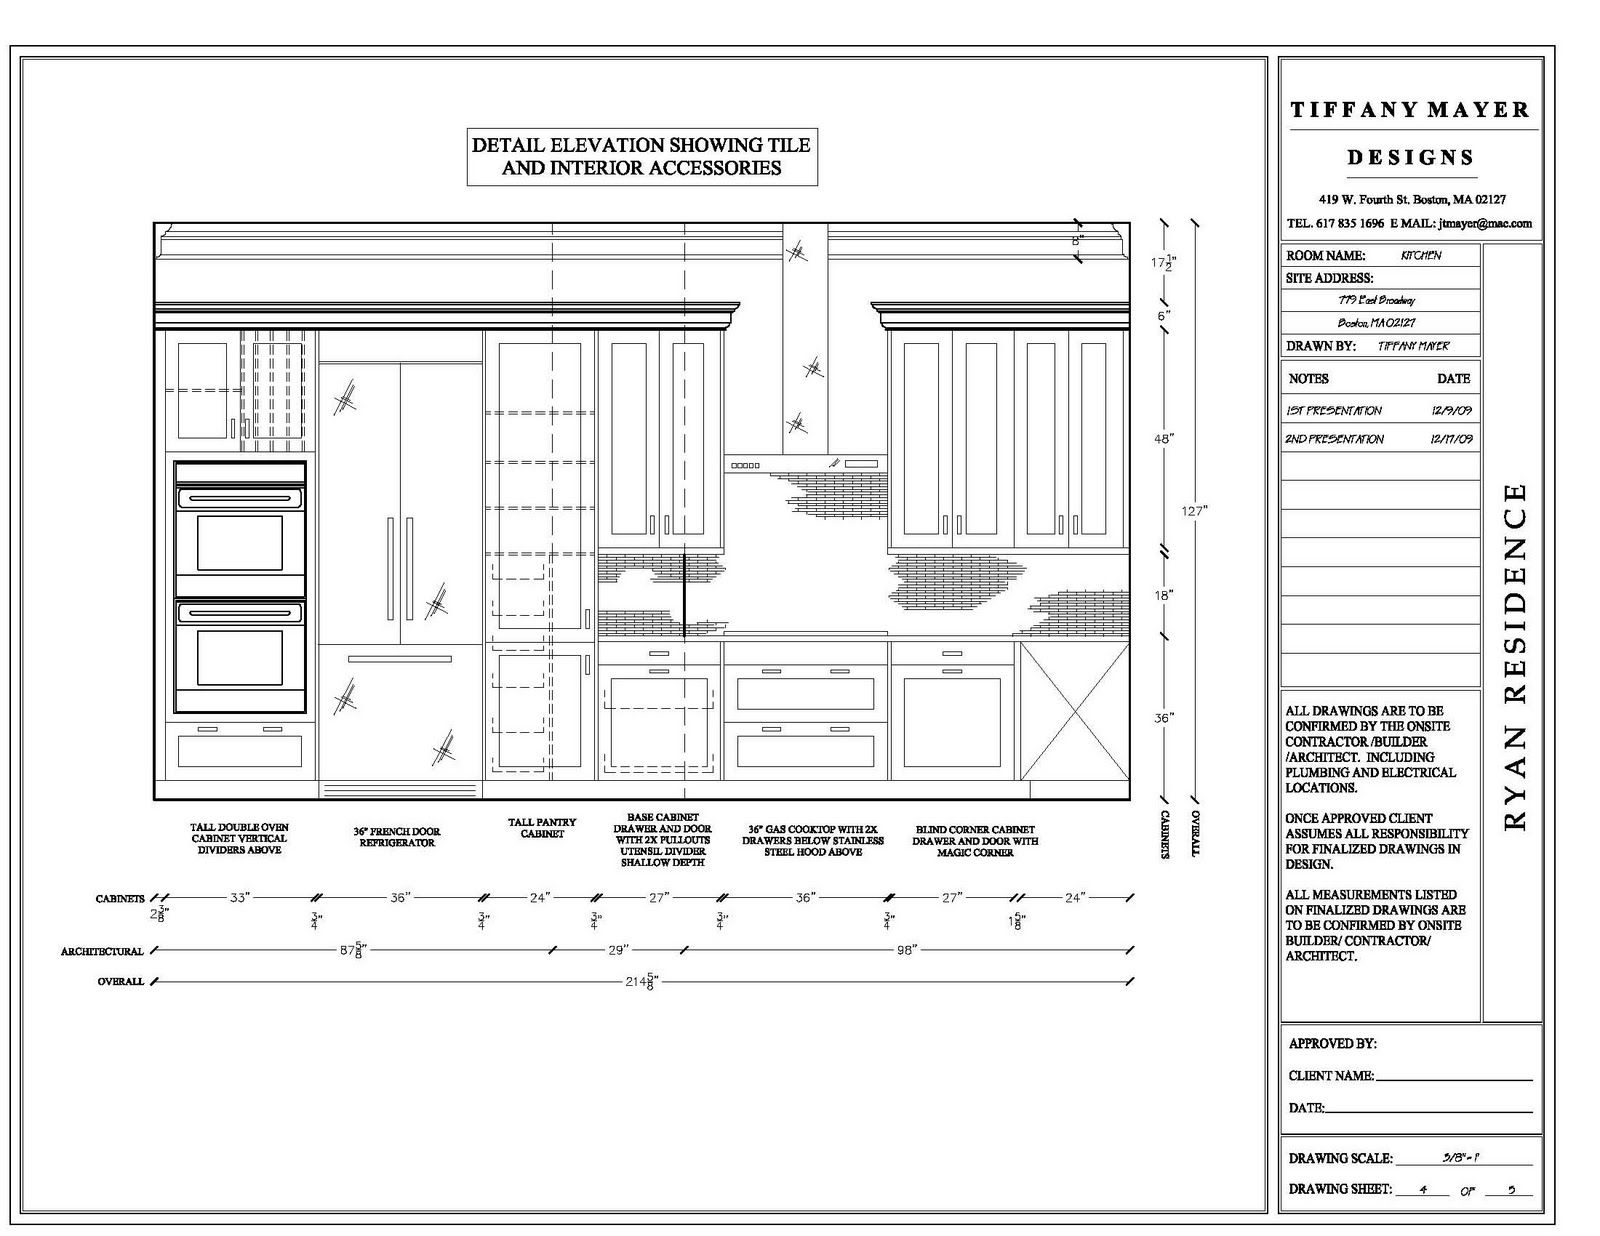 Elevation Drawings Cabinet Detail Drawing Size Interior Design L 1206d484bf9eab30